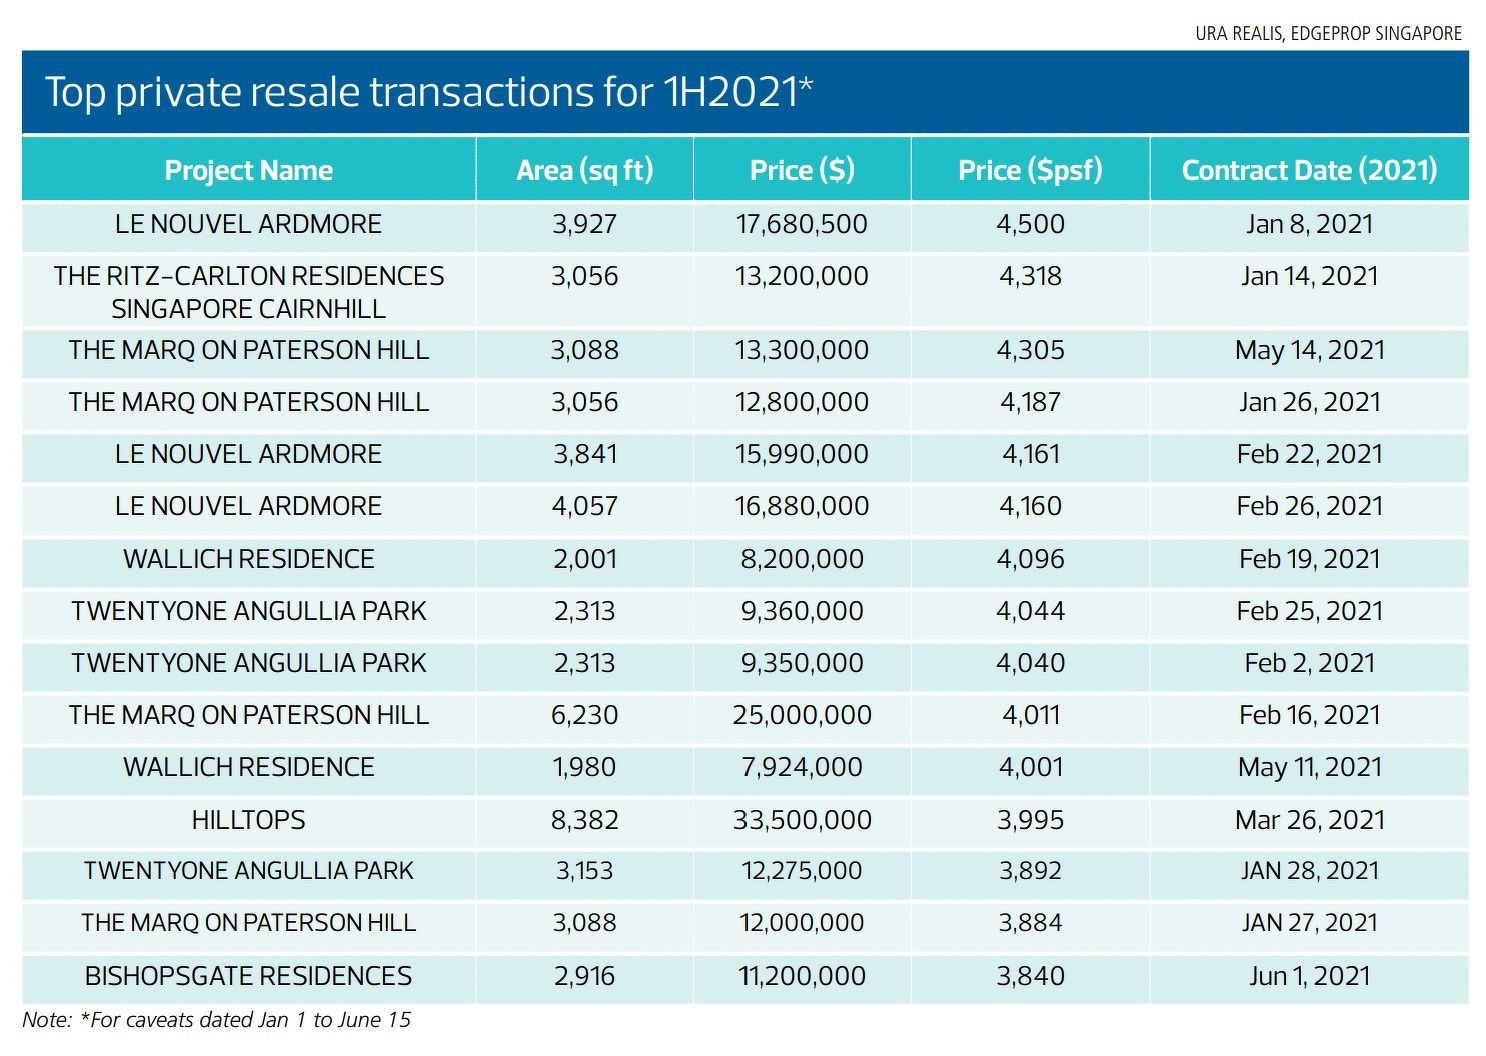 Top private resale transactions - EDGEPROP SINGAPORE